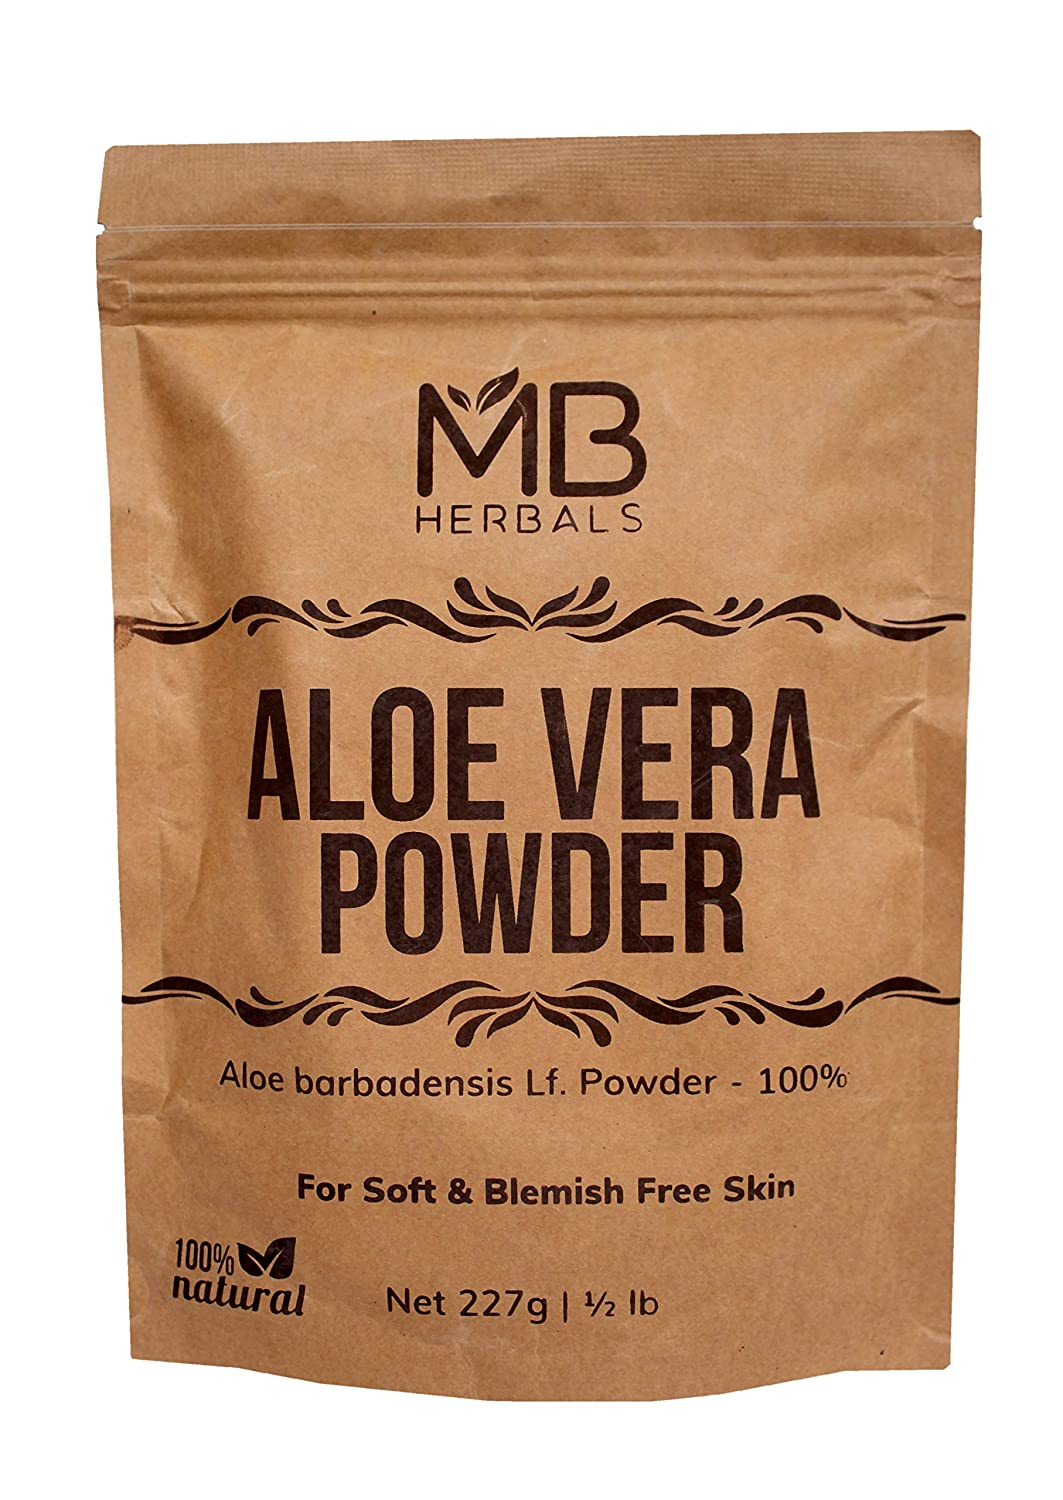 MB Herbals Aloe Vera Powder 100g | 3.5oz | 100% Pure & Organically Cultivated | Natural Skin Moisturizer | Controls Blemish Acne Pimples & Fine Lines | EXTERNAL USE ONLY